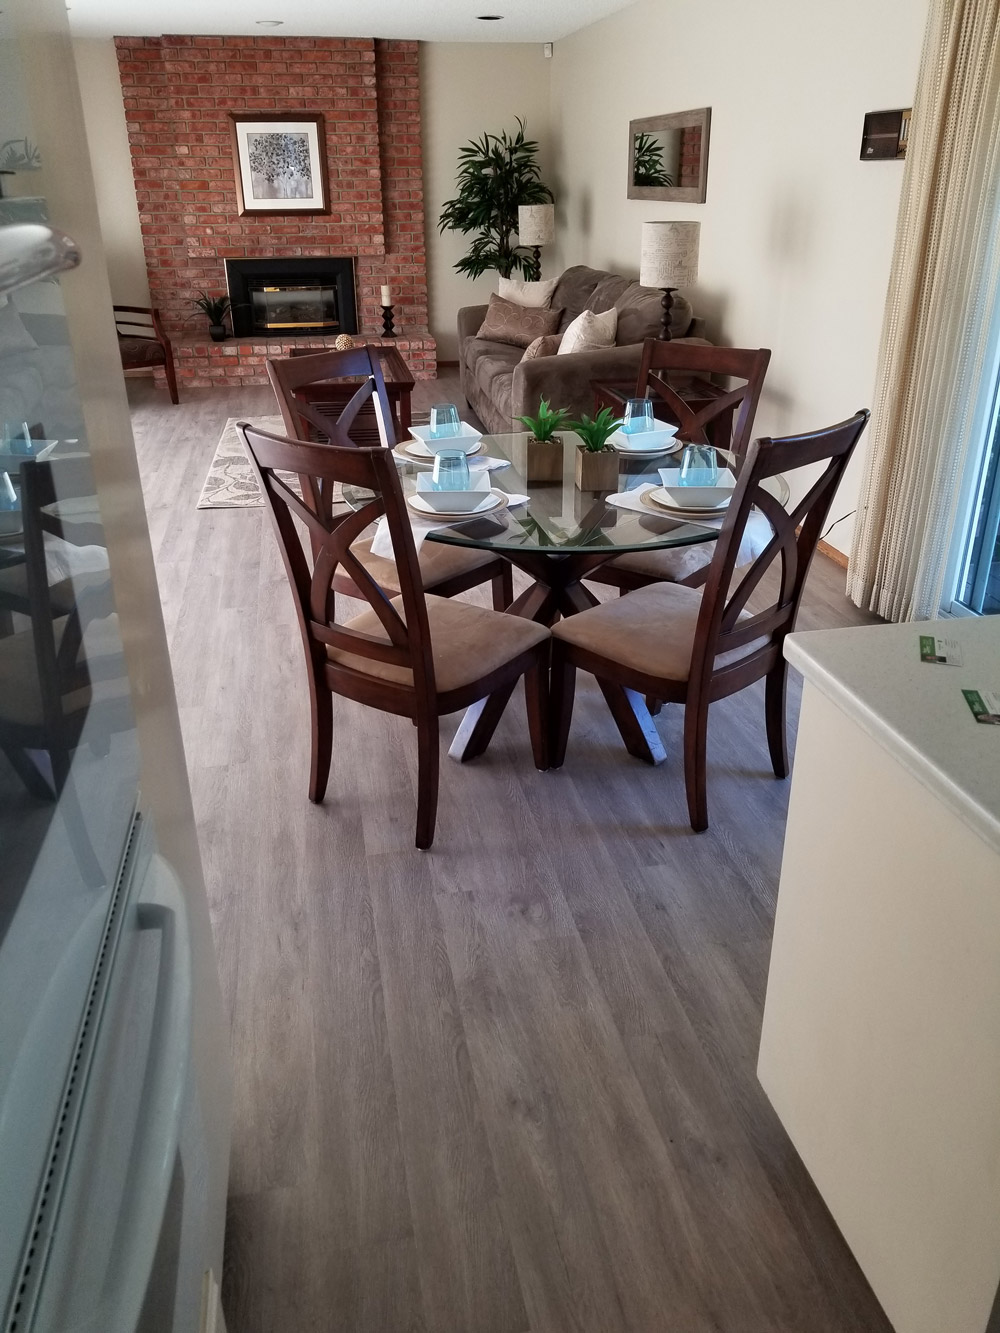 Sunnyvale,  residential: Water-proof, luxury vinyl tile (LVT)  installed in family room and dinning room.  450 square feet.